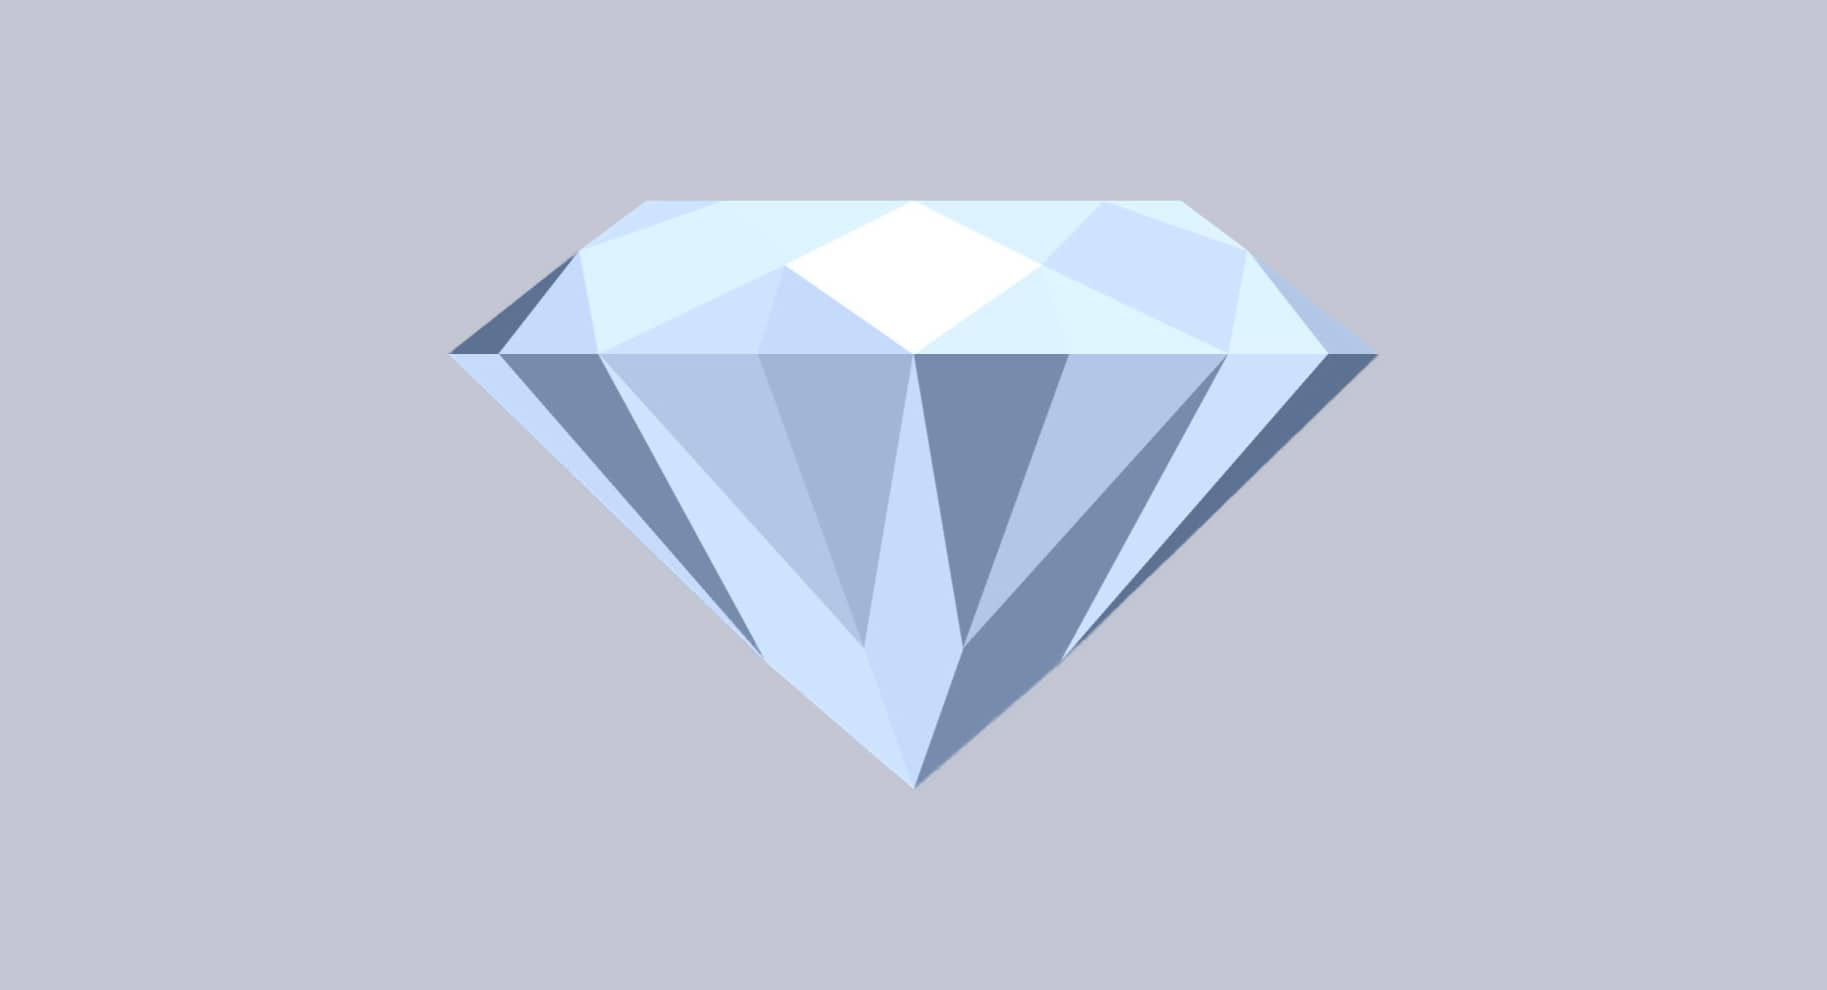 round cut diamond illustration